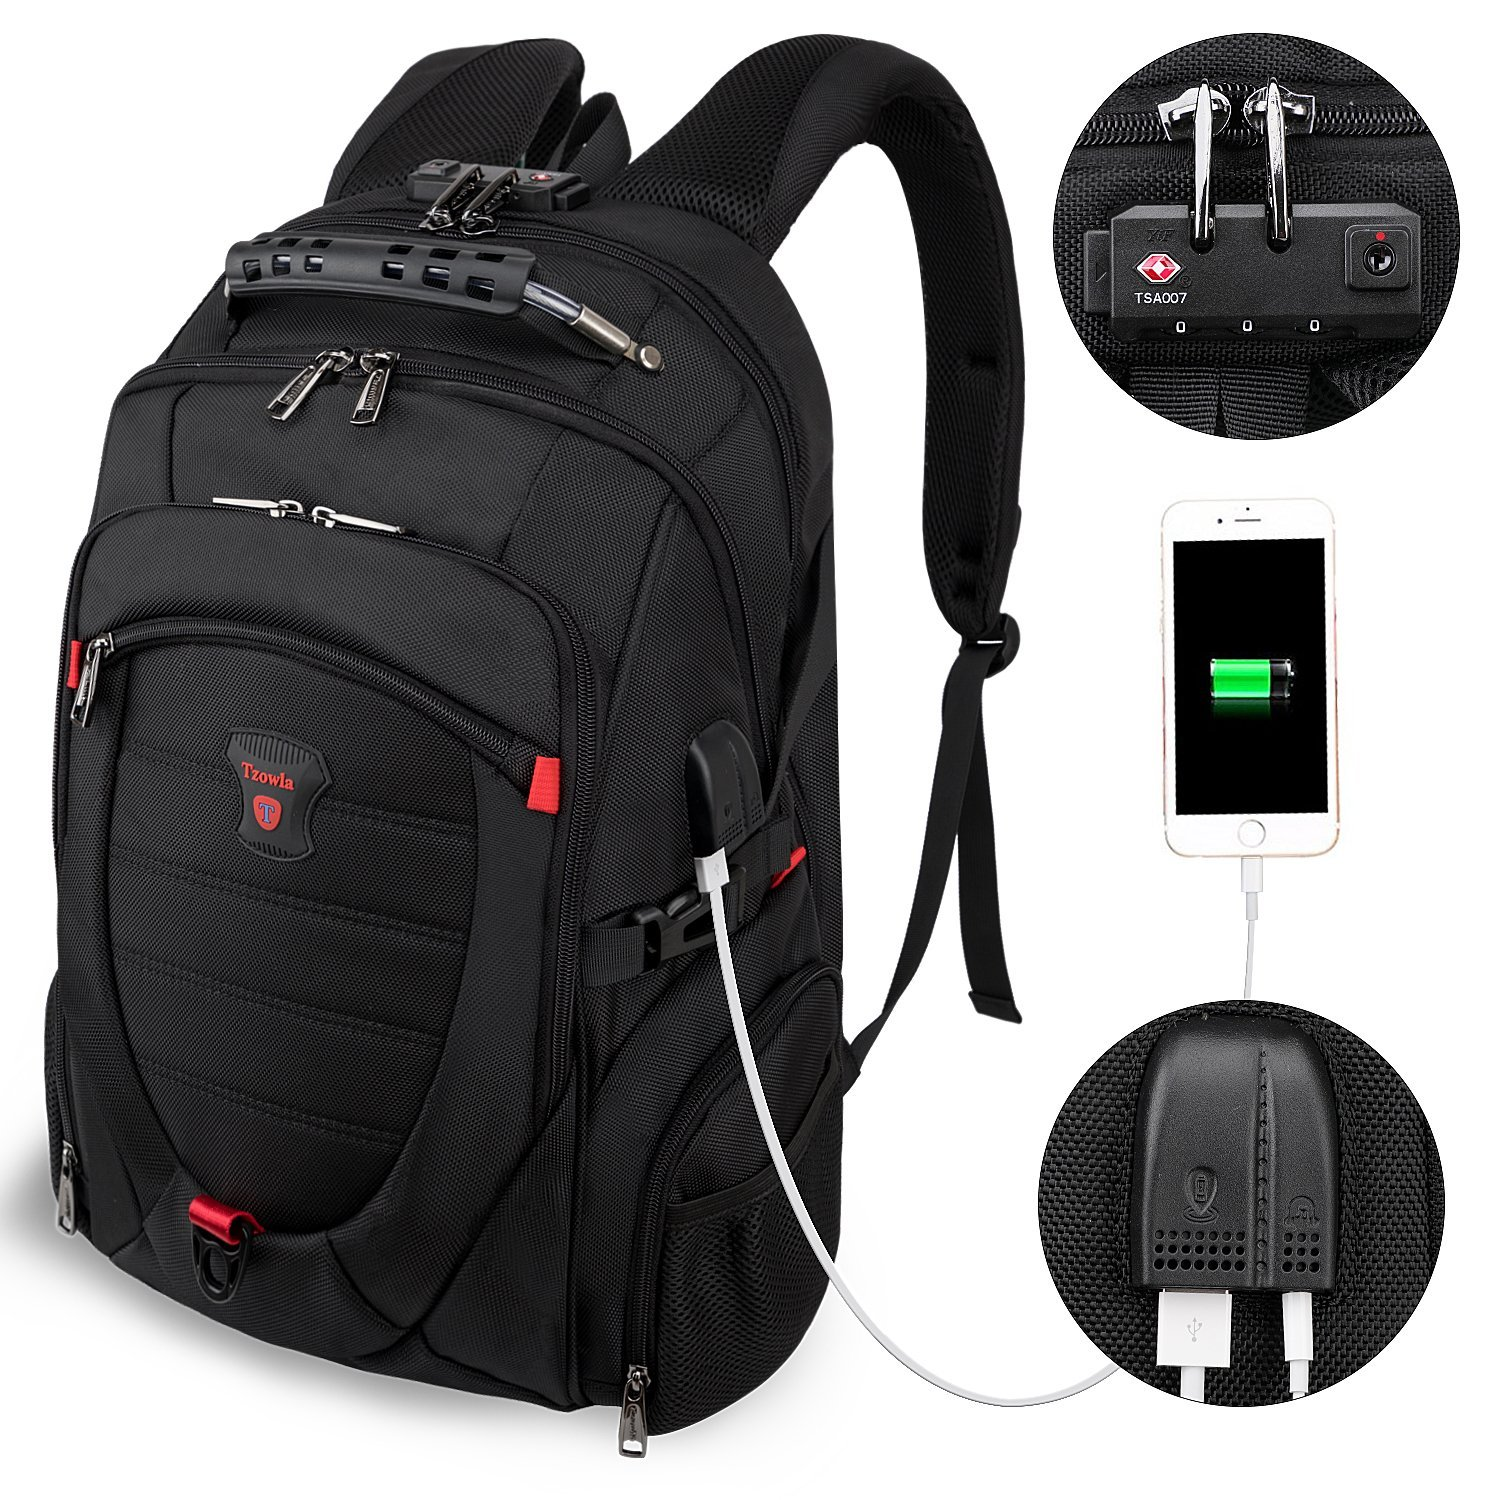 Kopack Slim Business Laptop Backpack Review- Fenix Toulouse Handball d2fc282bc0a60